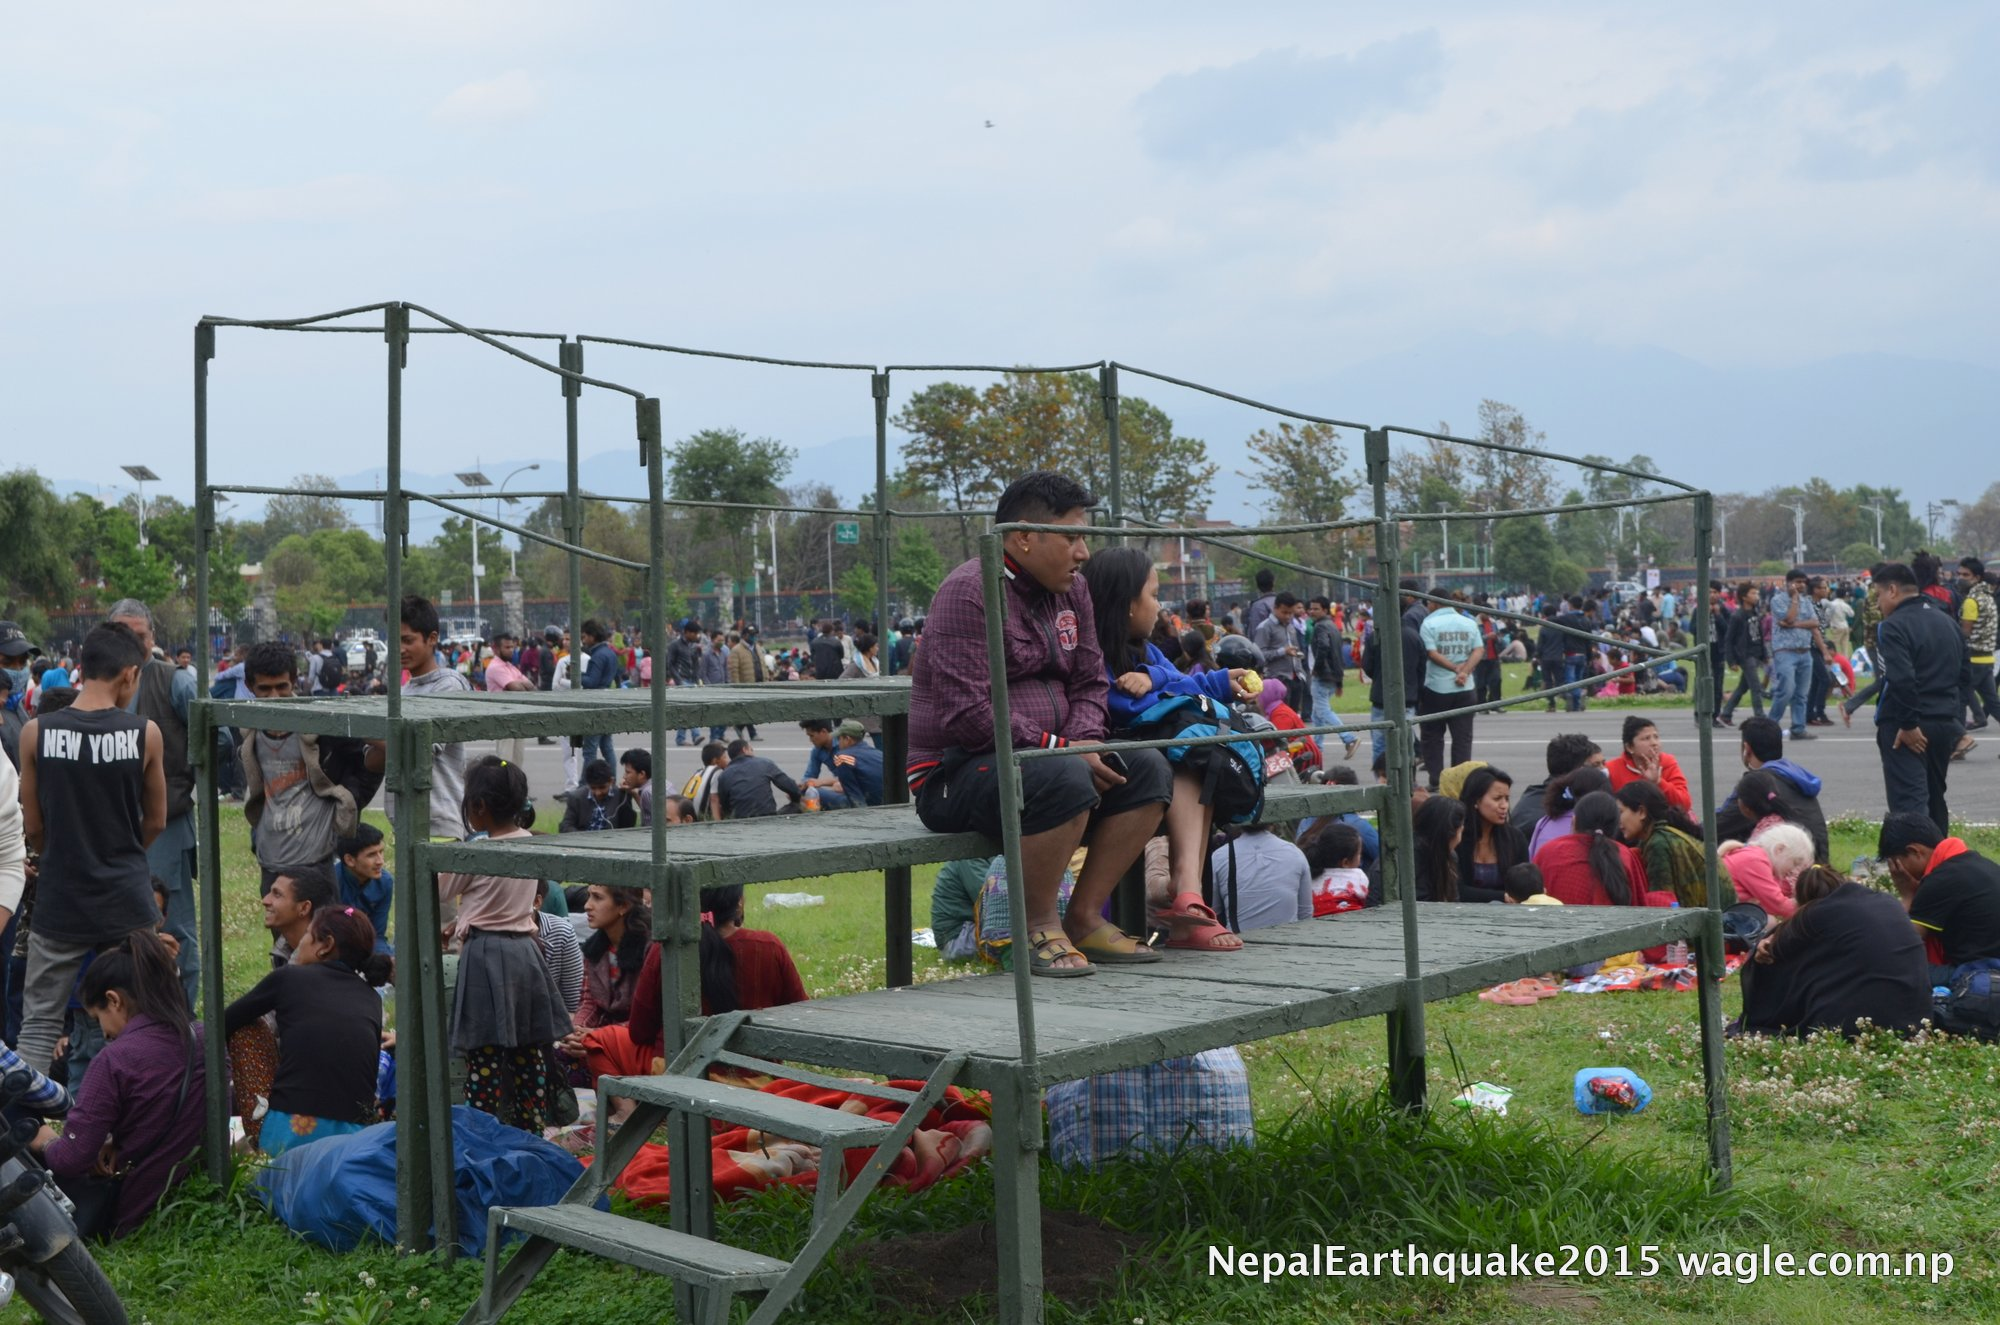 Within hours, most of open spaces in Kathmandu had been occupied. Even the VIP area at the Tundikhel military parade ground which is normally restricted for the public was opened. I had never stepped into that part of the parade ground before.